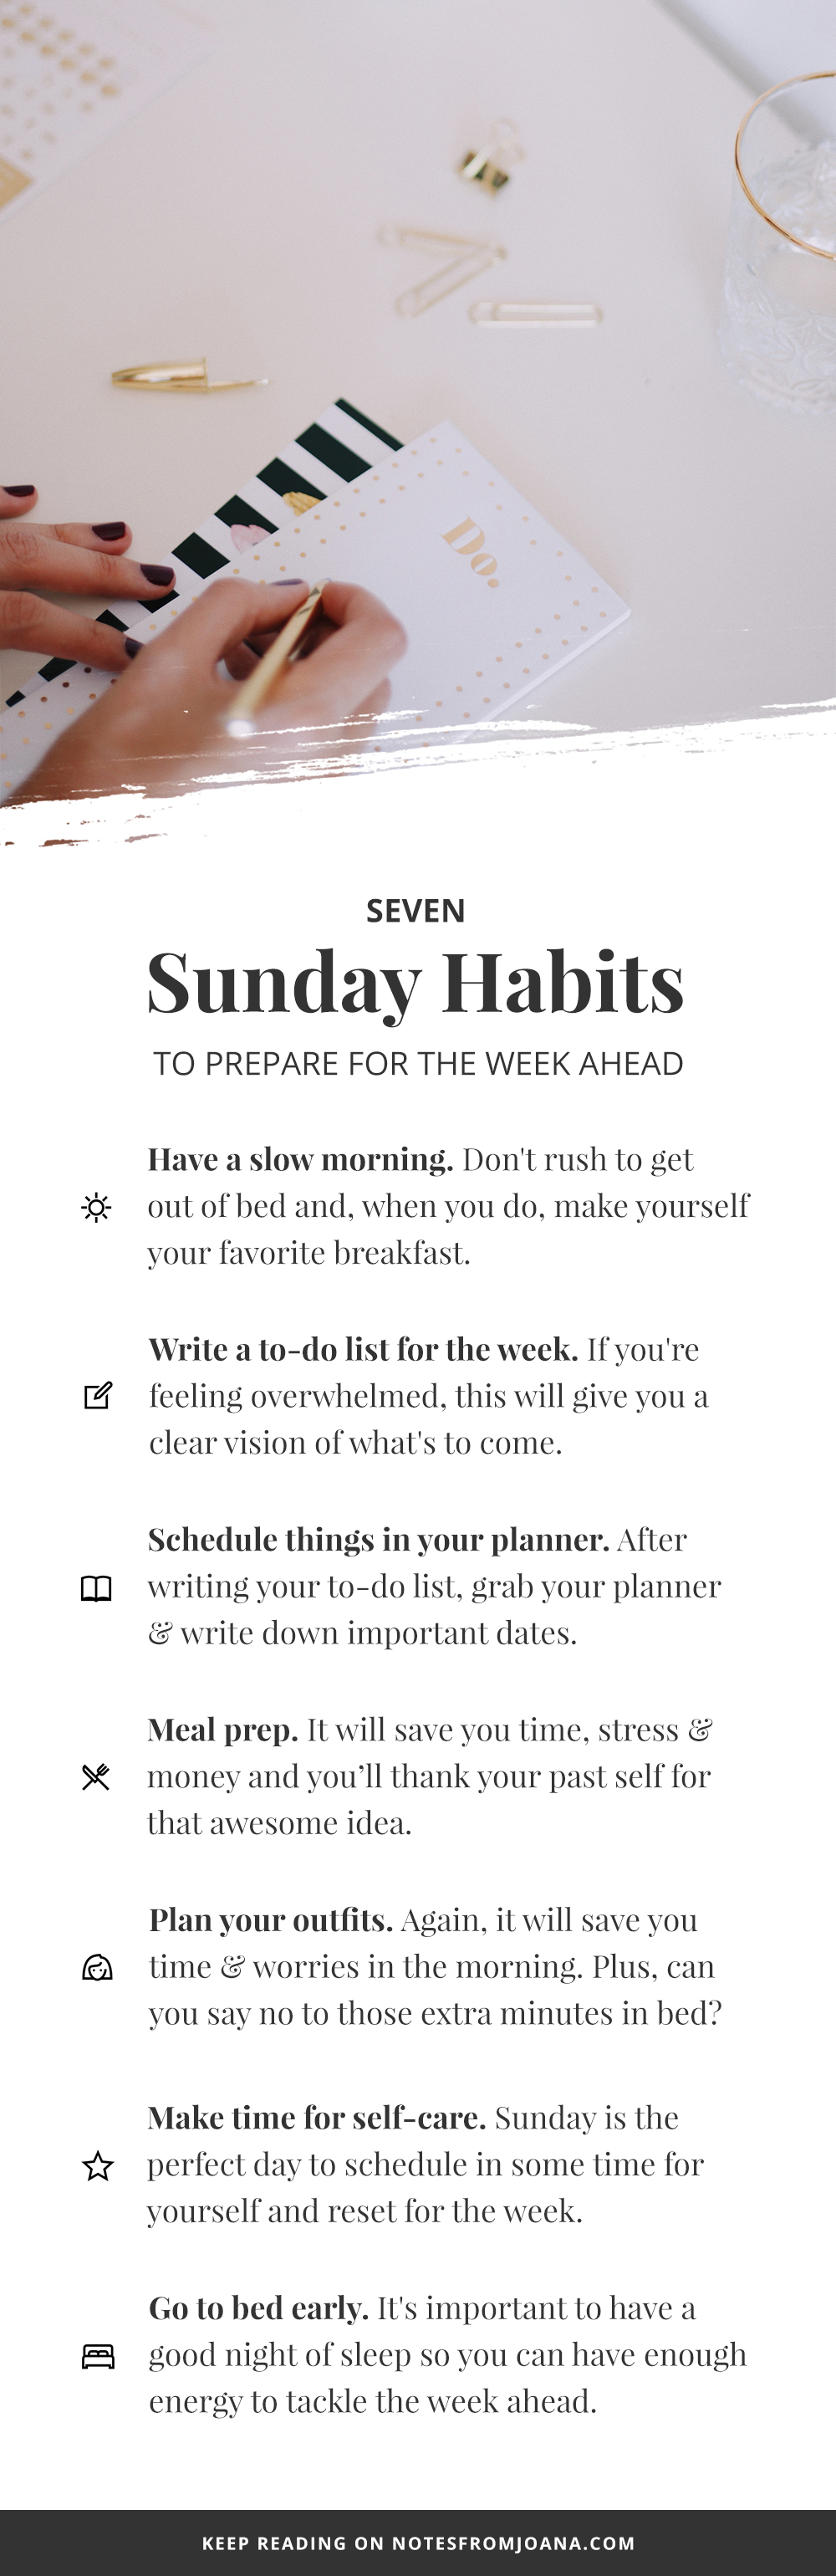 http://notesfromjoana.com/wp-content/uploads/2017/10/7-Sunday-Habits-To-Prepare-You-For-The-Week-Ahead-3-1.jpg